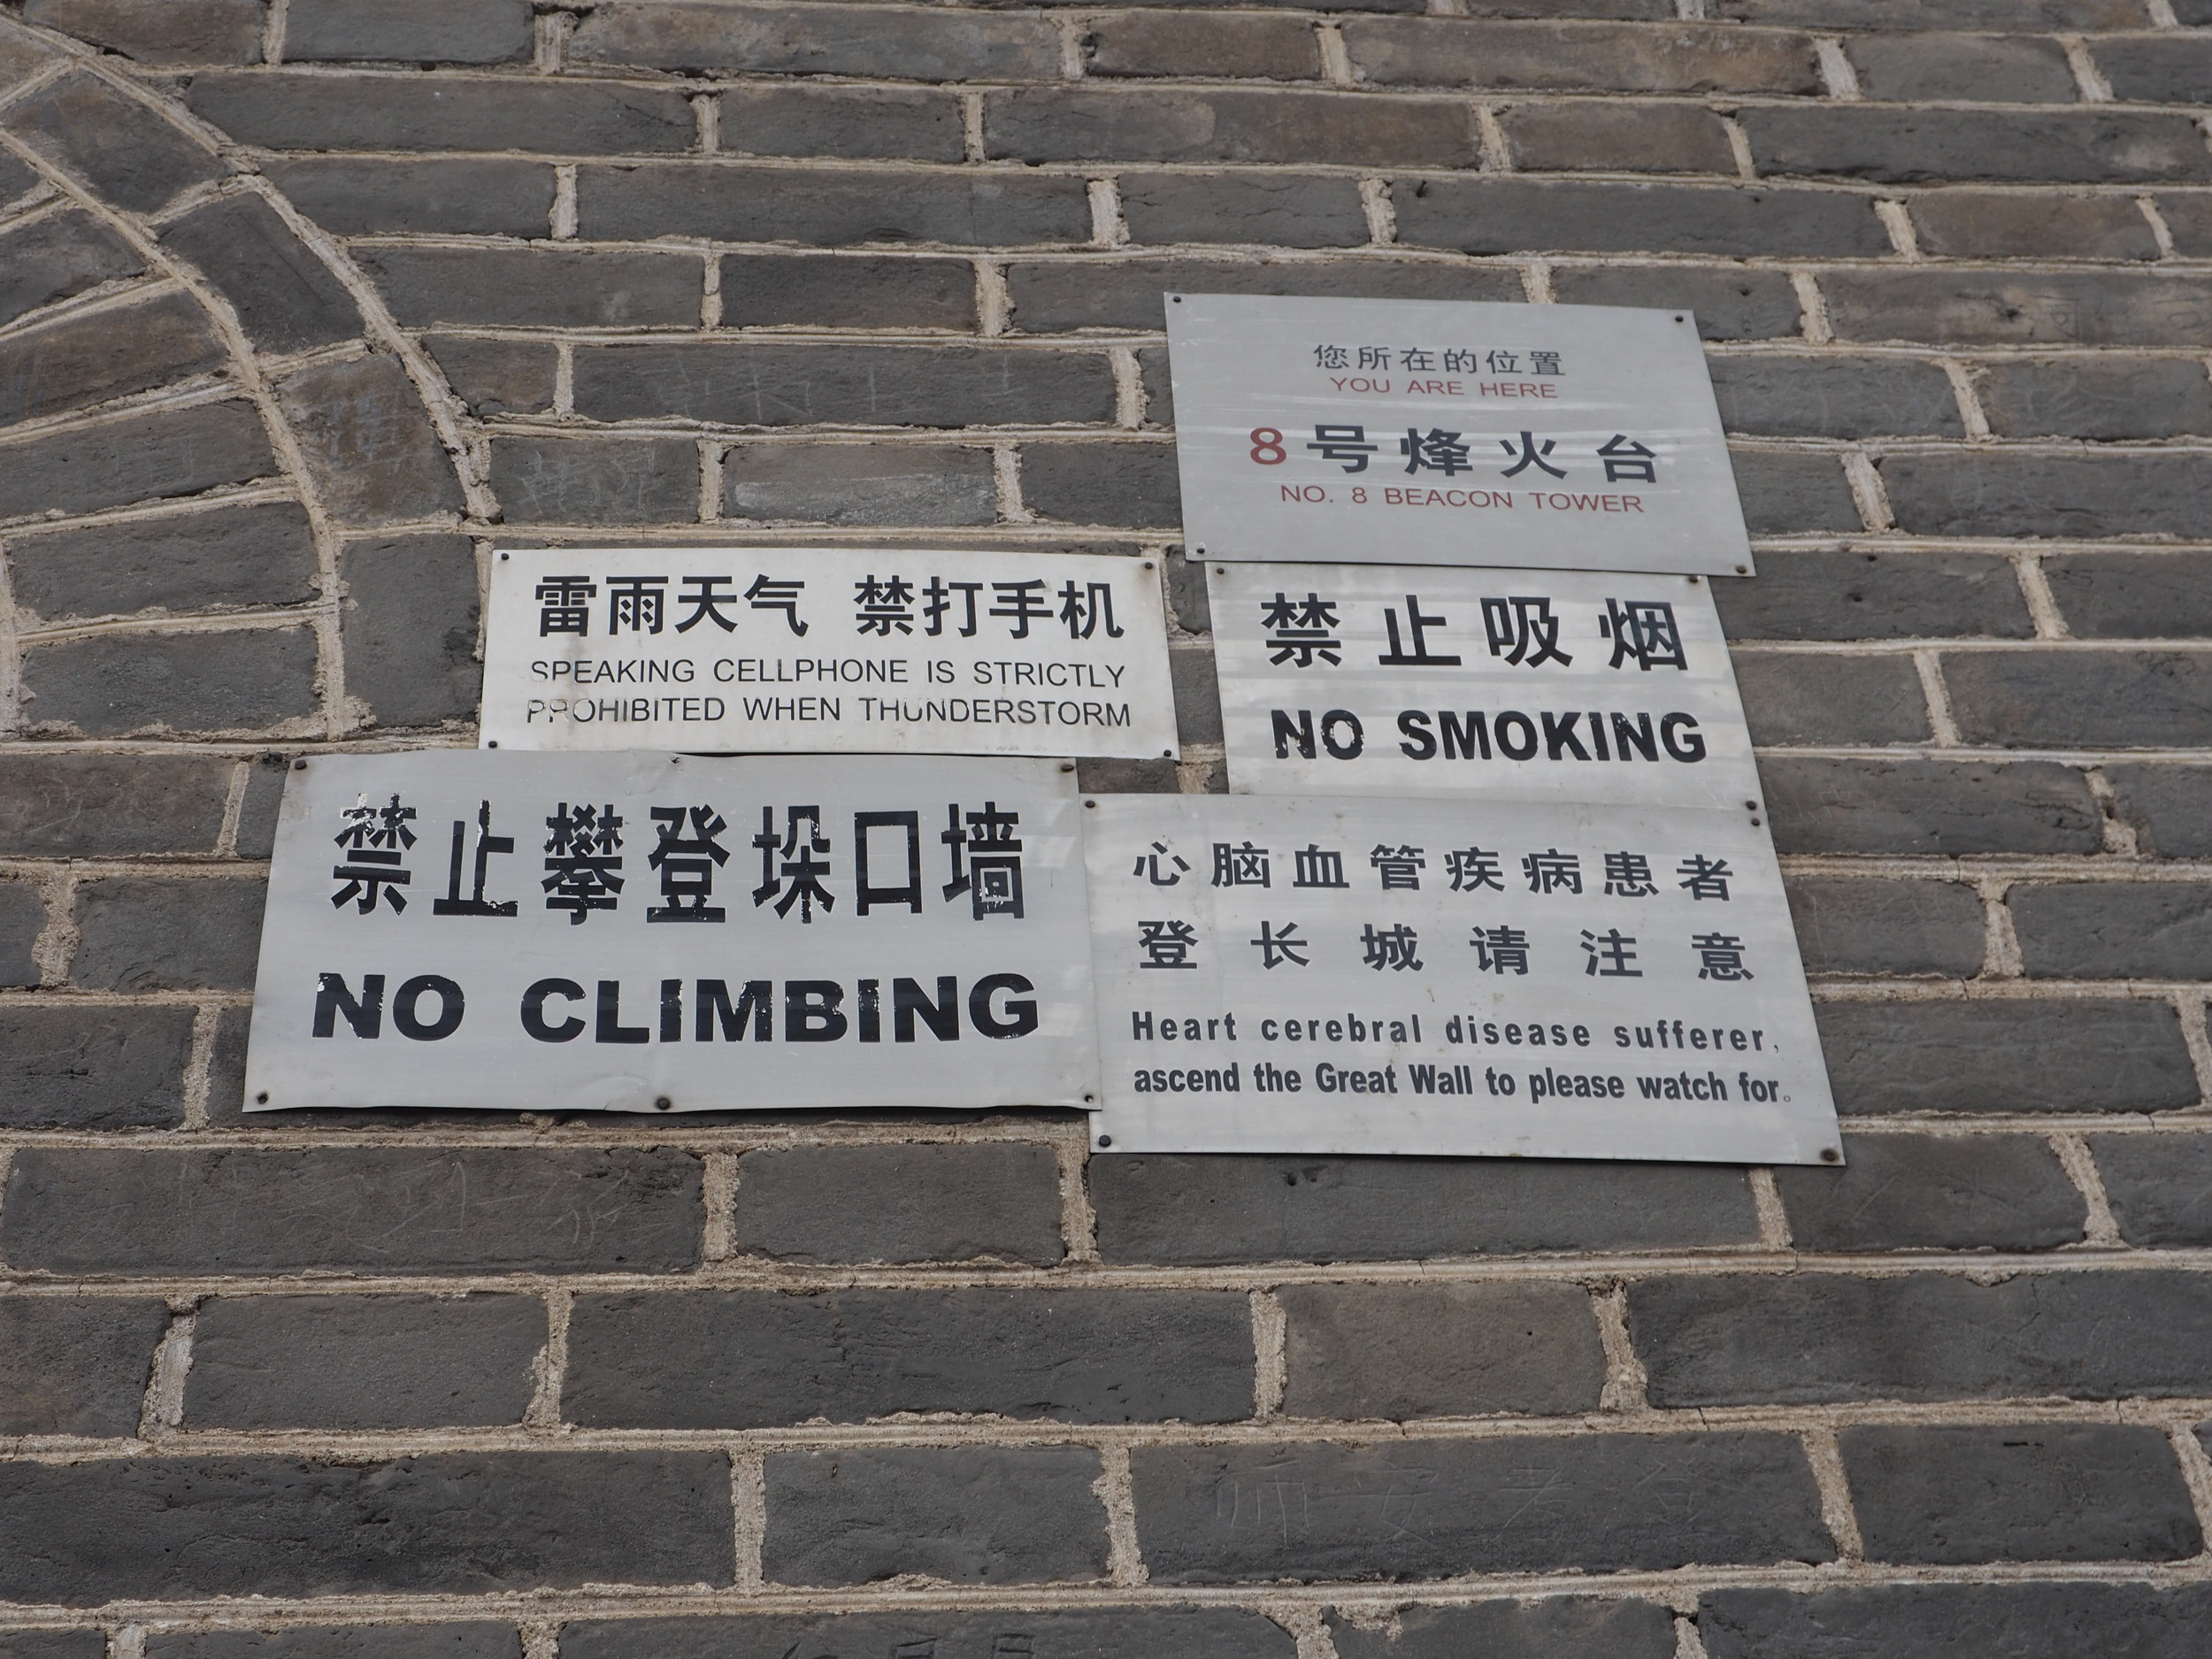 Sightseeing in China is no joke.